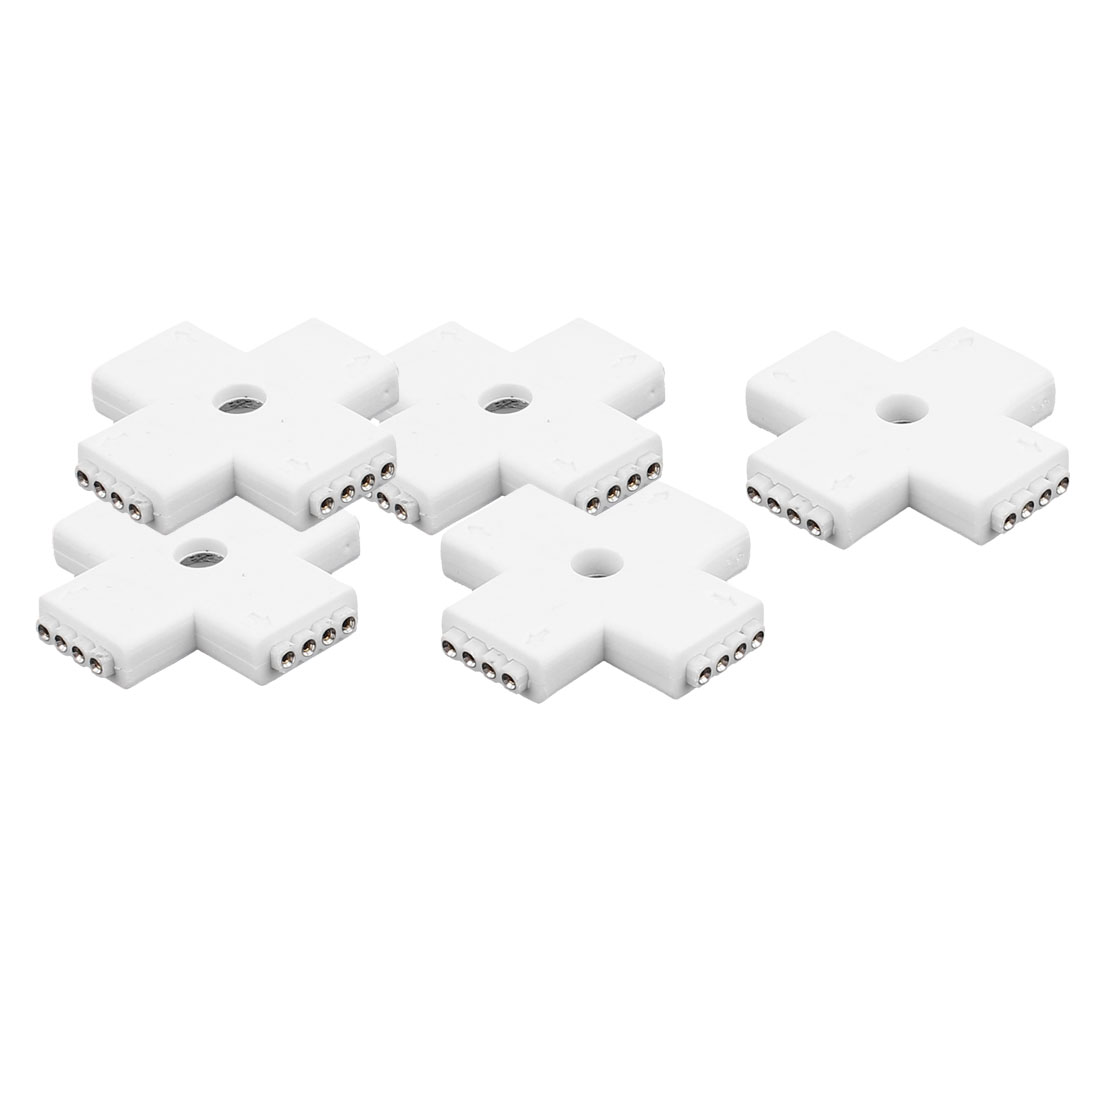 5 Pcs Cross Shape 4 Way 4P Female Connector White for 5050 RGBW Led Strip Light